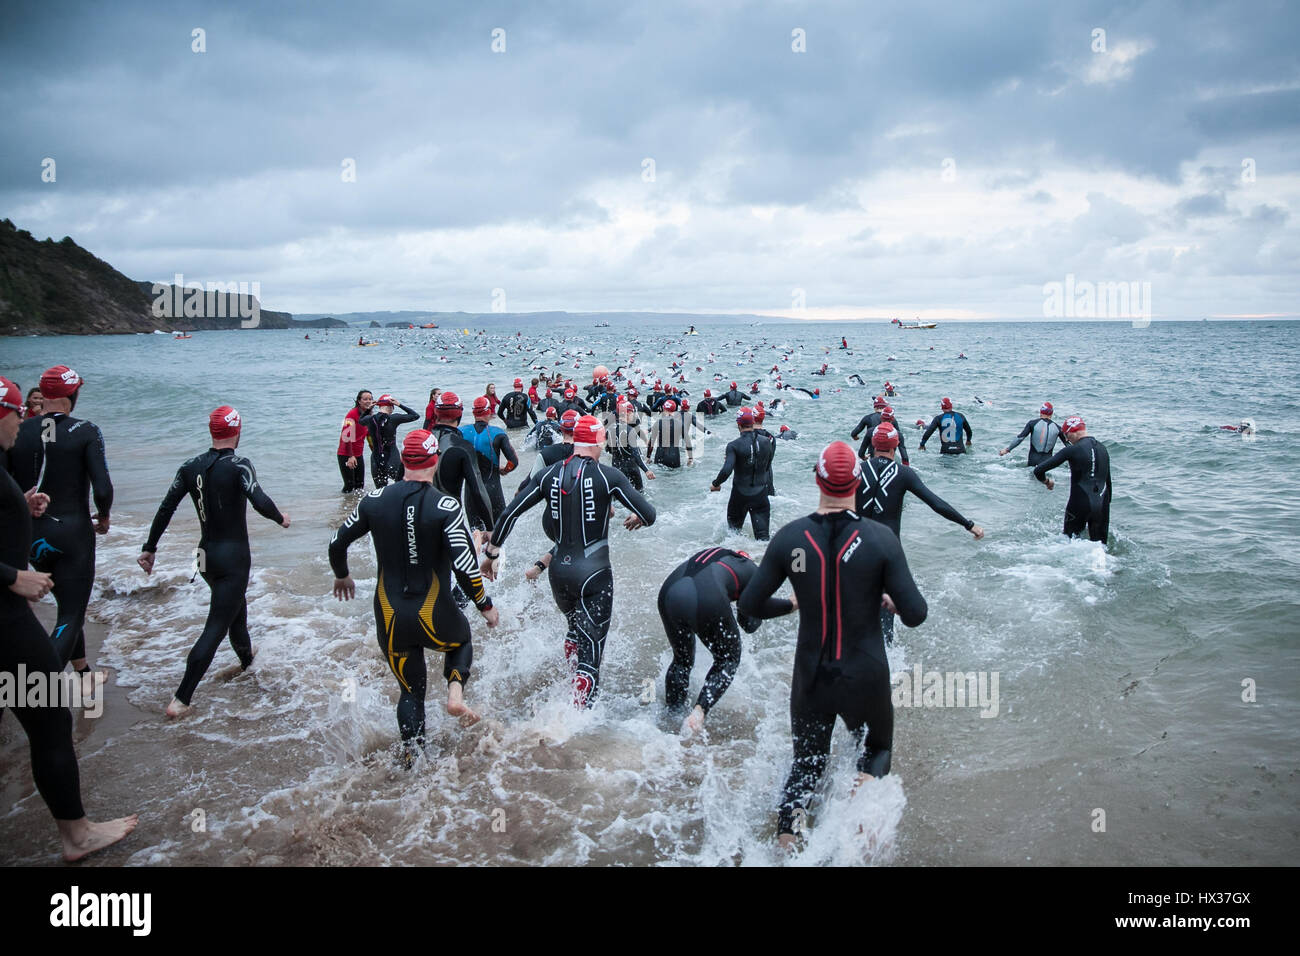 People take part in Ironman Wales, 2015, Tenby, Pembrokshire, Wales, UK - Stock Image